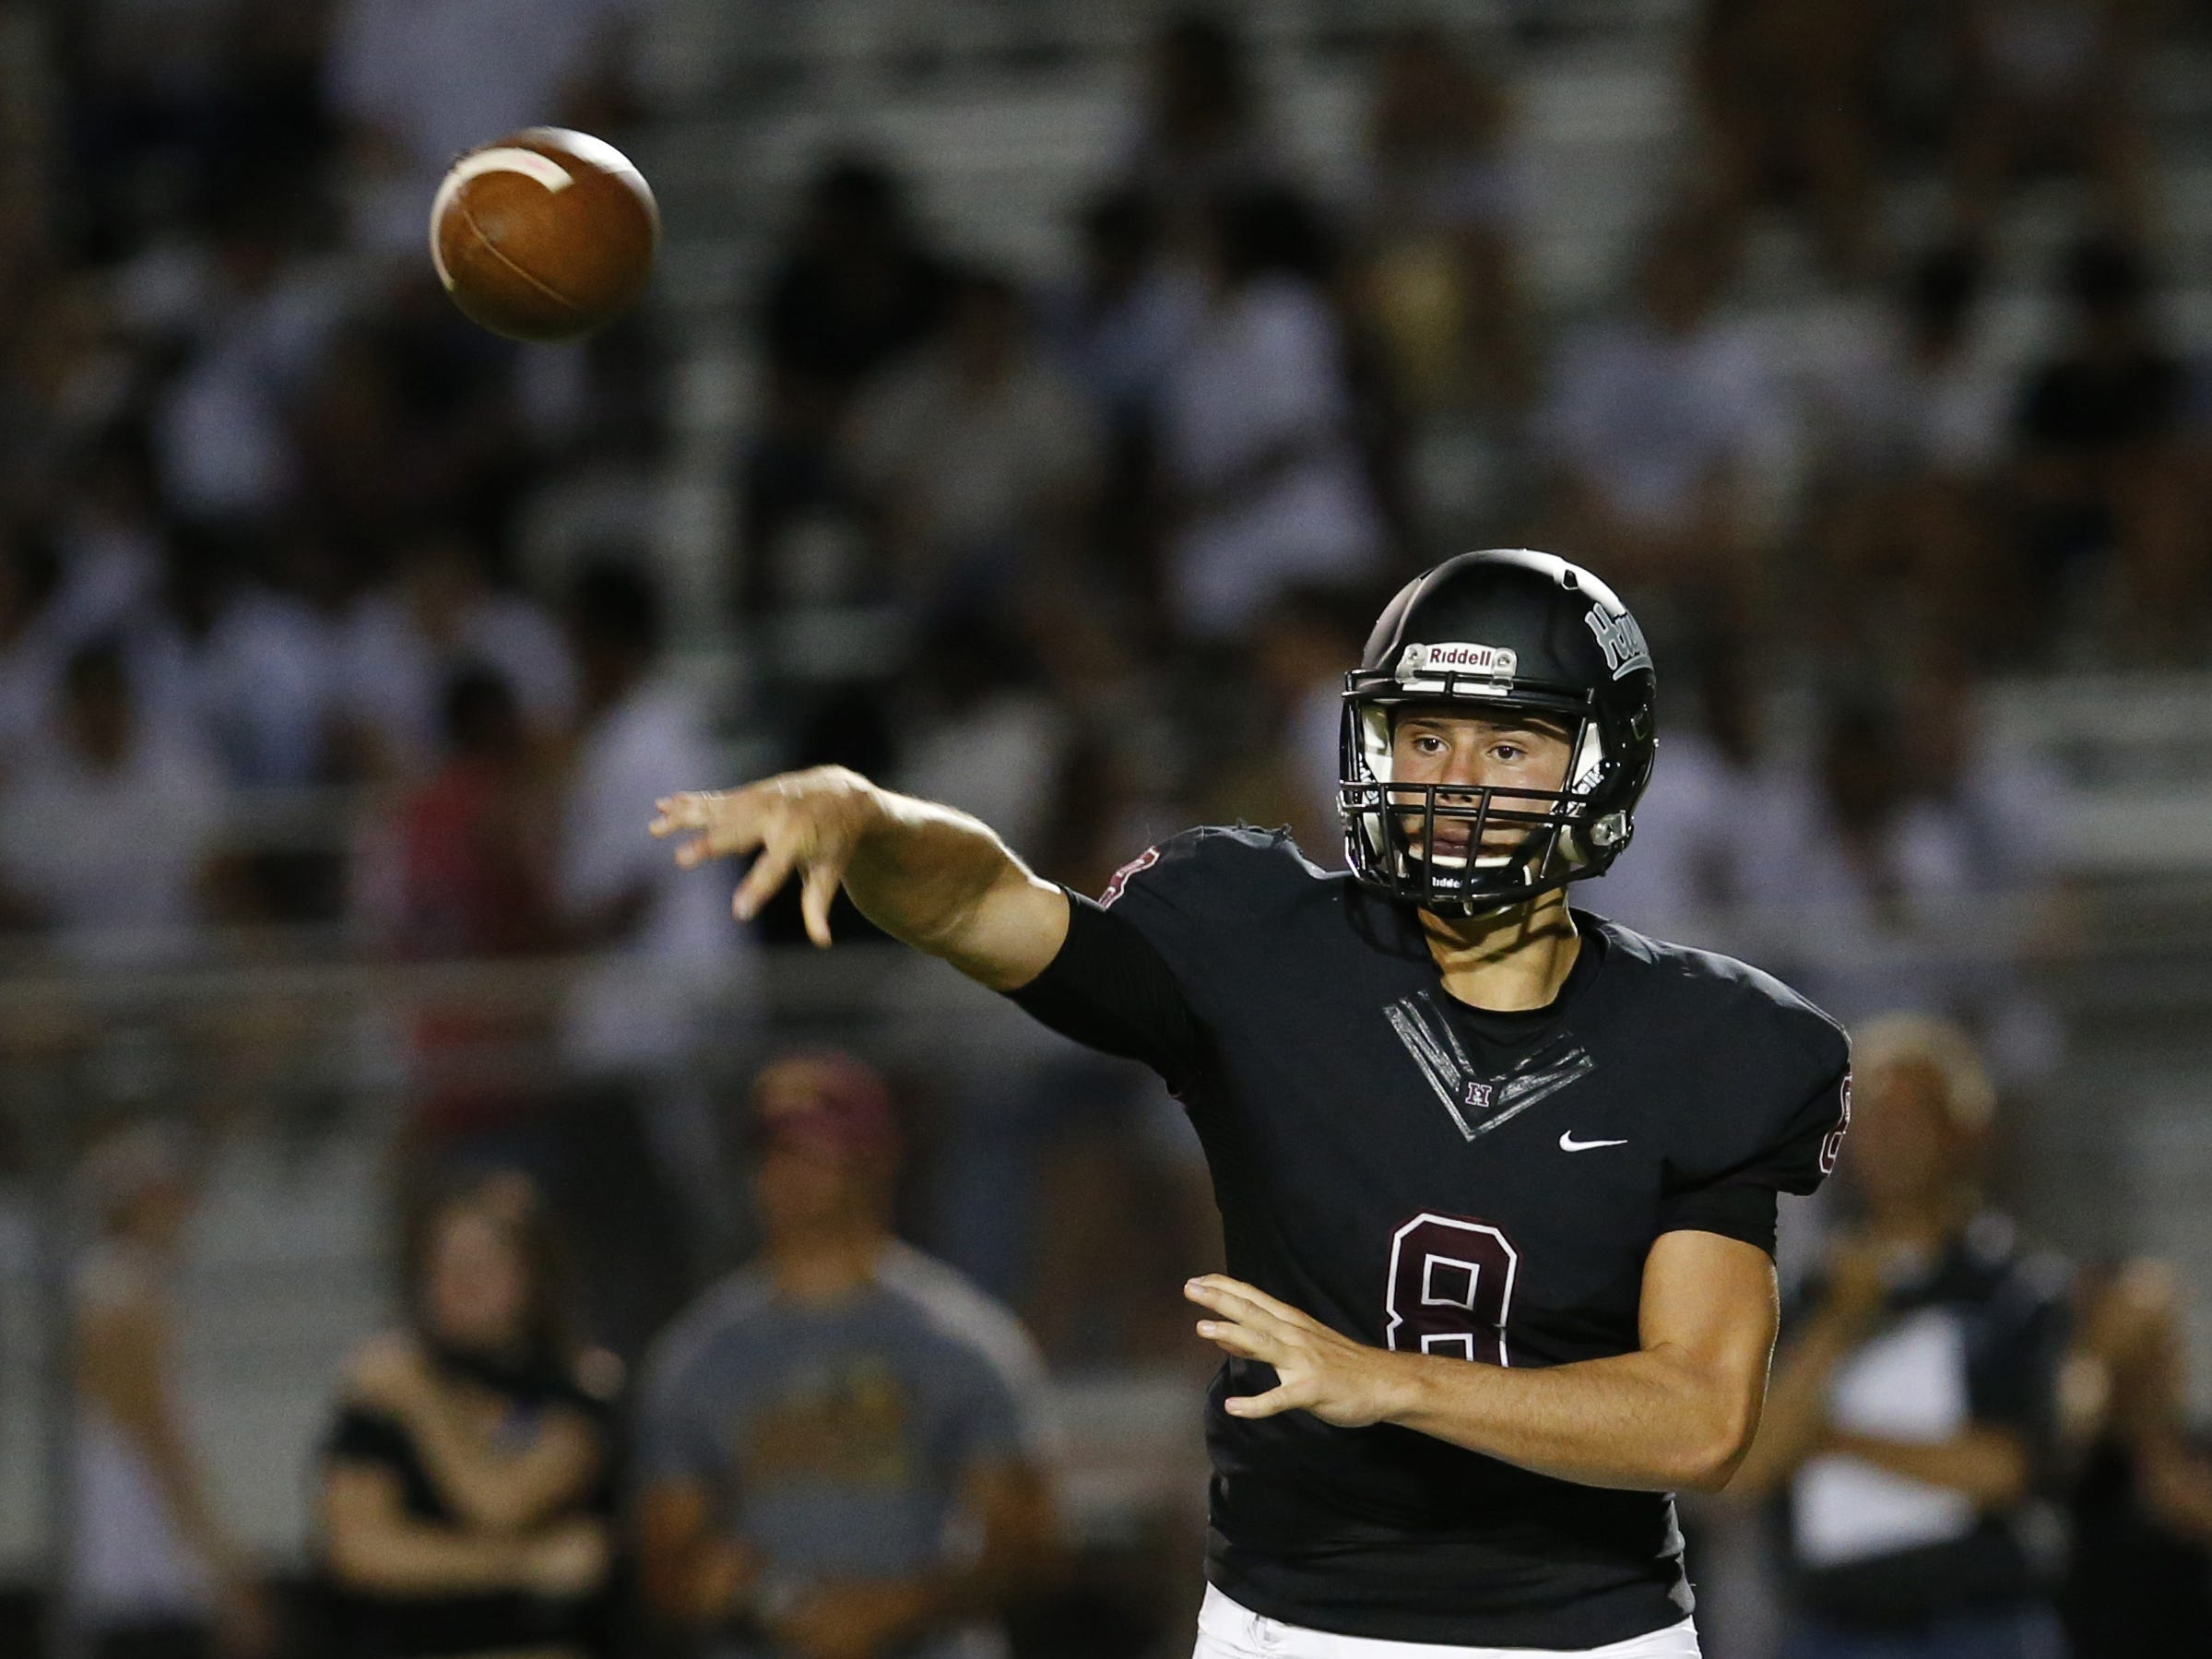 Hamilton Brandon Schenks (8) passes the ball during a high school football game against Chaparral at Hamilton in Chandler on August 17, 2018. #hsfb